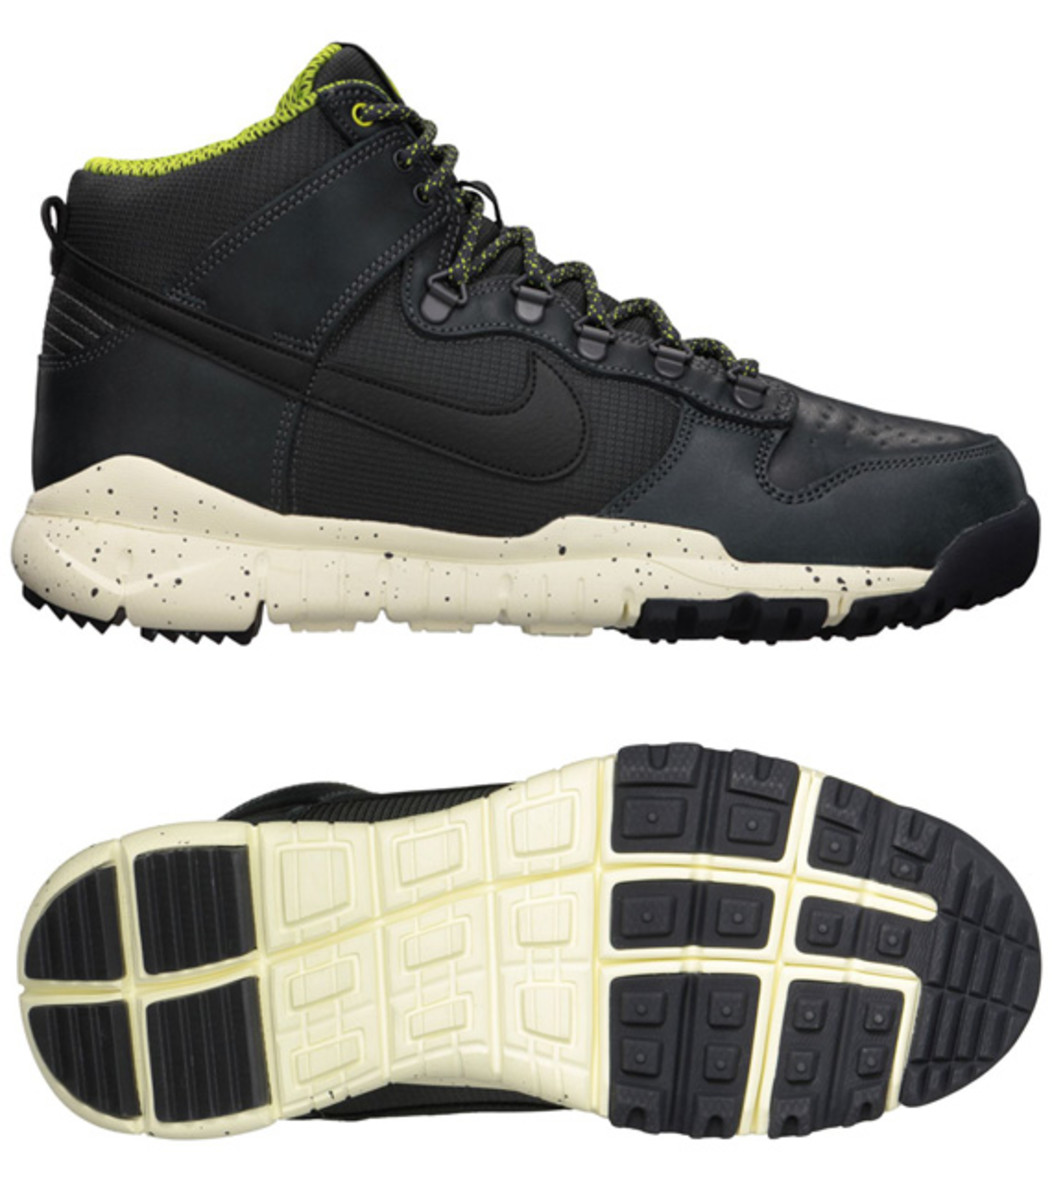 nike-dunk-hi-winter-anthracite-black-atomic green-cashmere-01